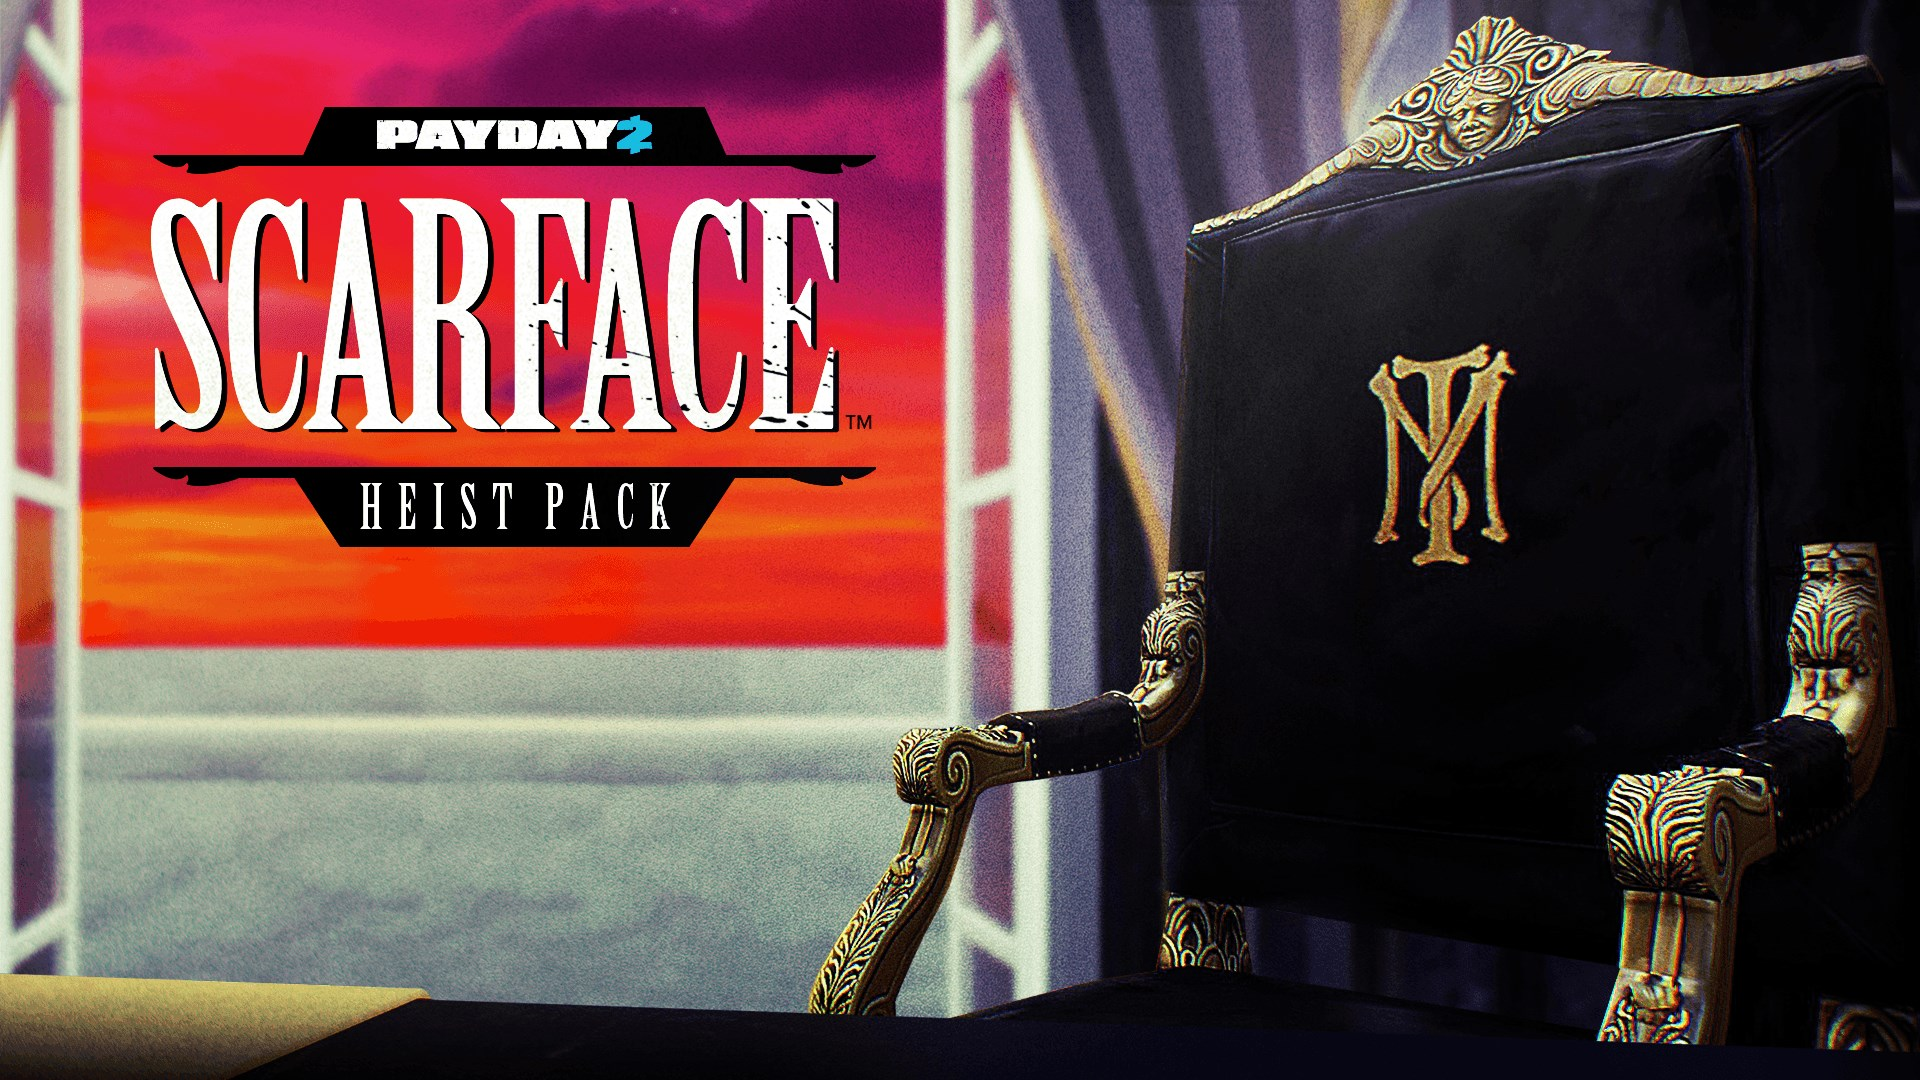 PAYDAY 2: CRIMEWAVE EDITION - Scarface Heist